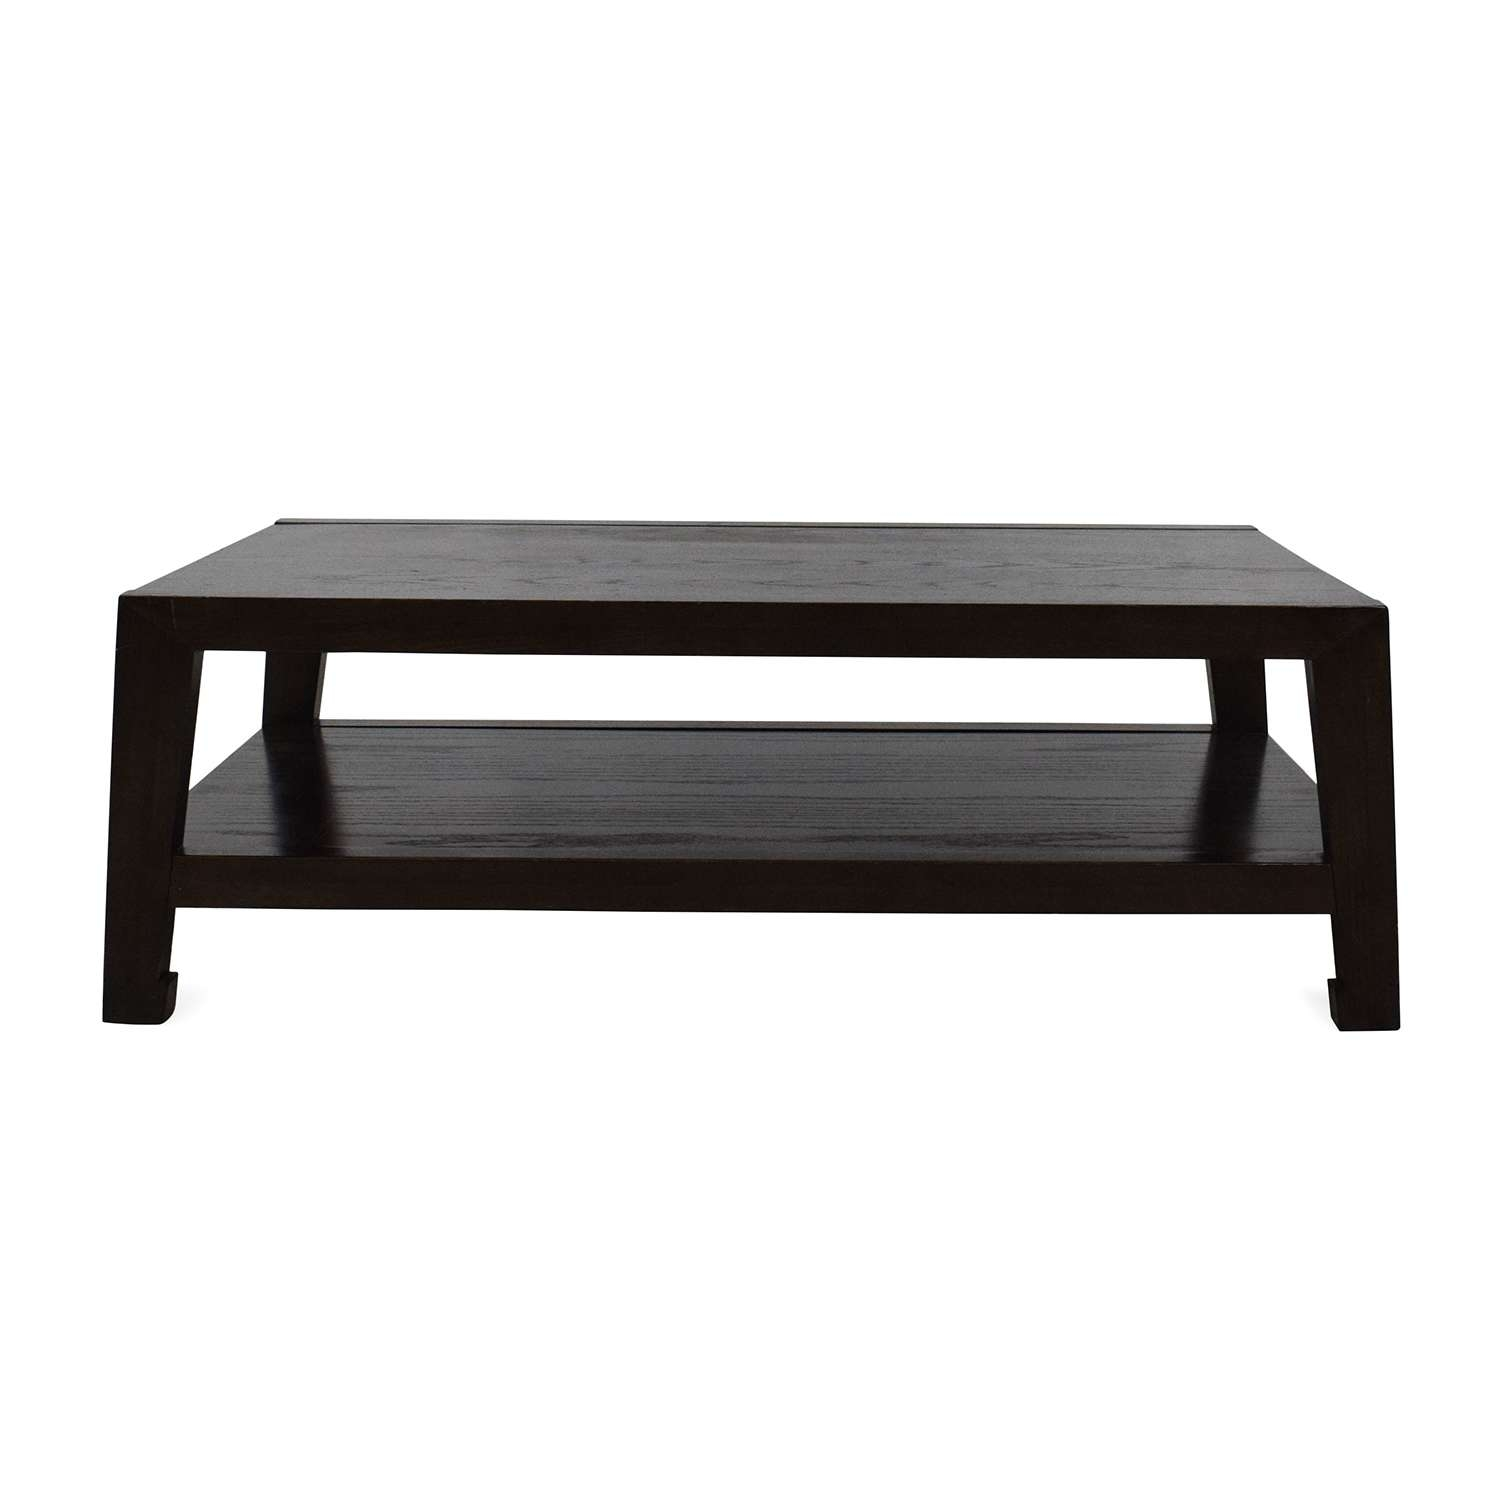 Newest Dark Mango Coffee Tables Inside Coffee Table : Magnificent Living Room Coffee Table Coffee Table (View 16 of 20)